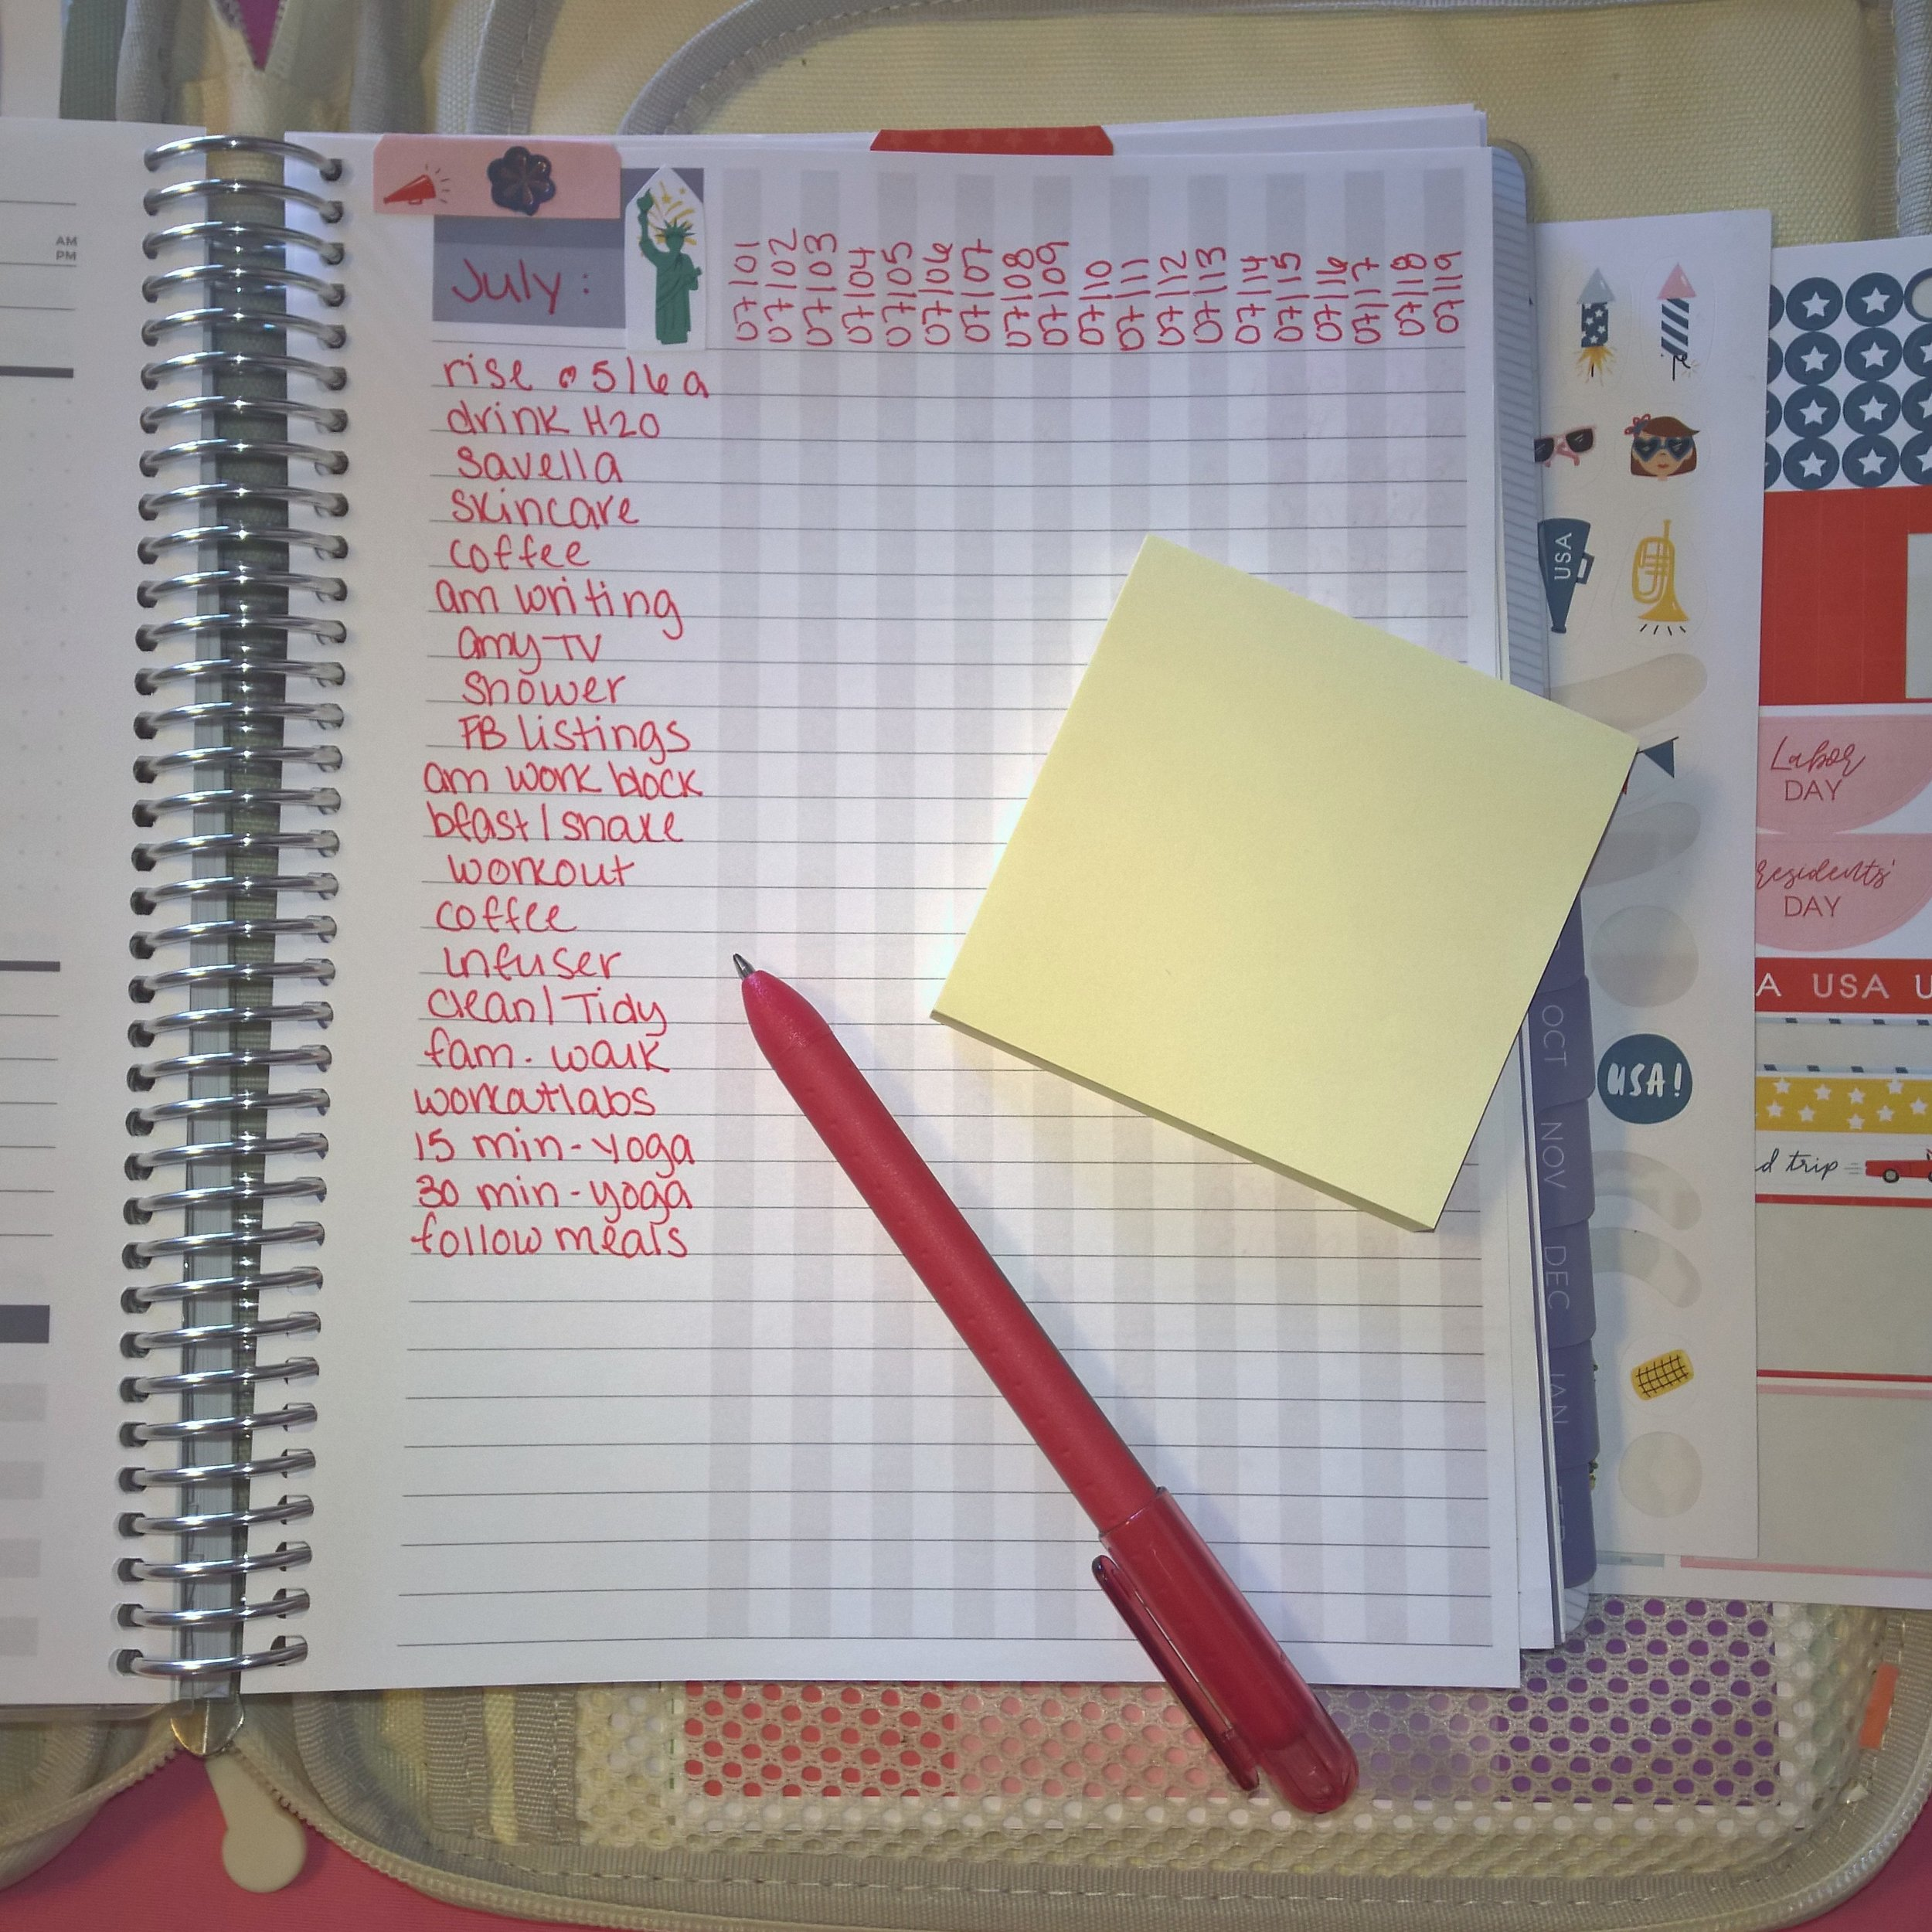 Checklist Page - I use this for specific tasks that I take on Daily - (dispersed) section of July in my Plum Paper 7x9 Vertical Lines Family Management Planner | July Plum Paper Walkthrough